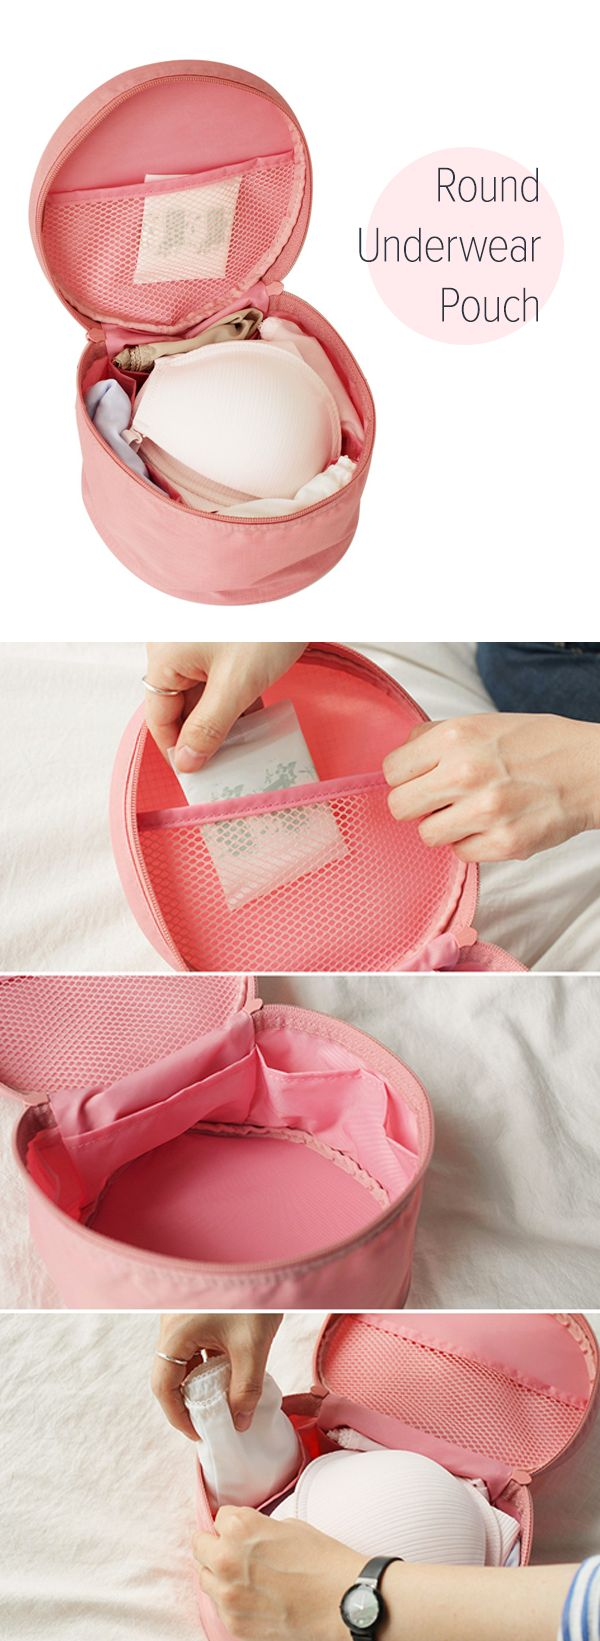 Neat! A travel pouch made just for underwear! I love it! The pockets and main compartment are more than enough to store all the bras, undies, and feminine hygiene products I'll need for my travels. This will make packing so much easier and help keep my suitcase organized too! The round shape and clean design are cute and to top it off, it's made of a water resistant material. I never knew I needed this, but now I don't know what I'd do without it! I am definitely getting one! You should…